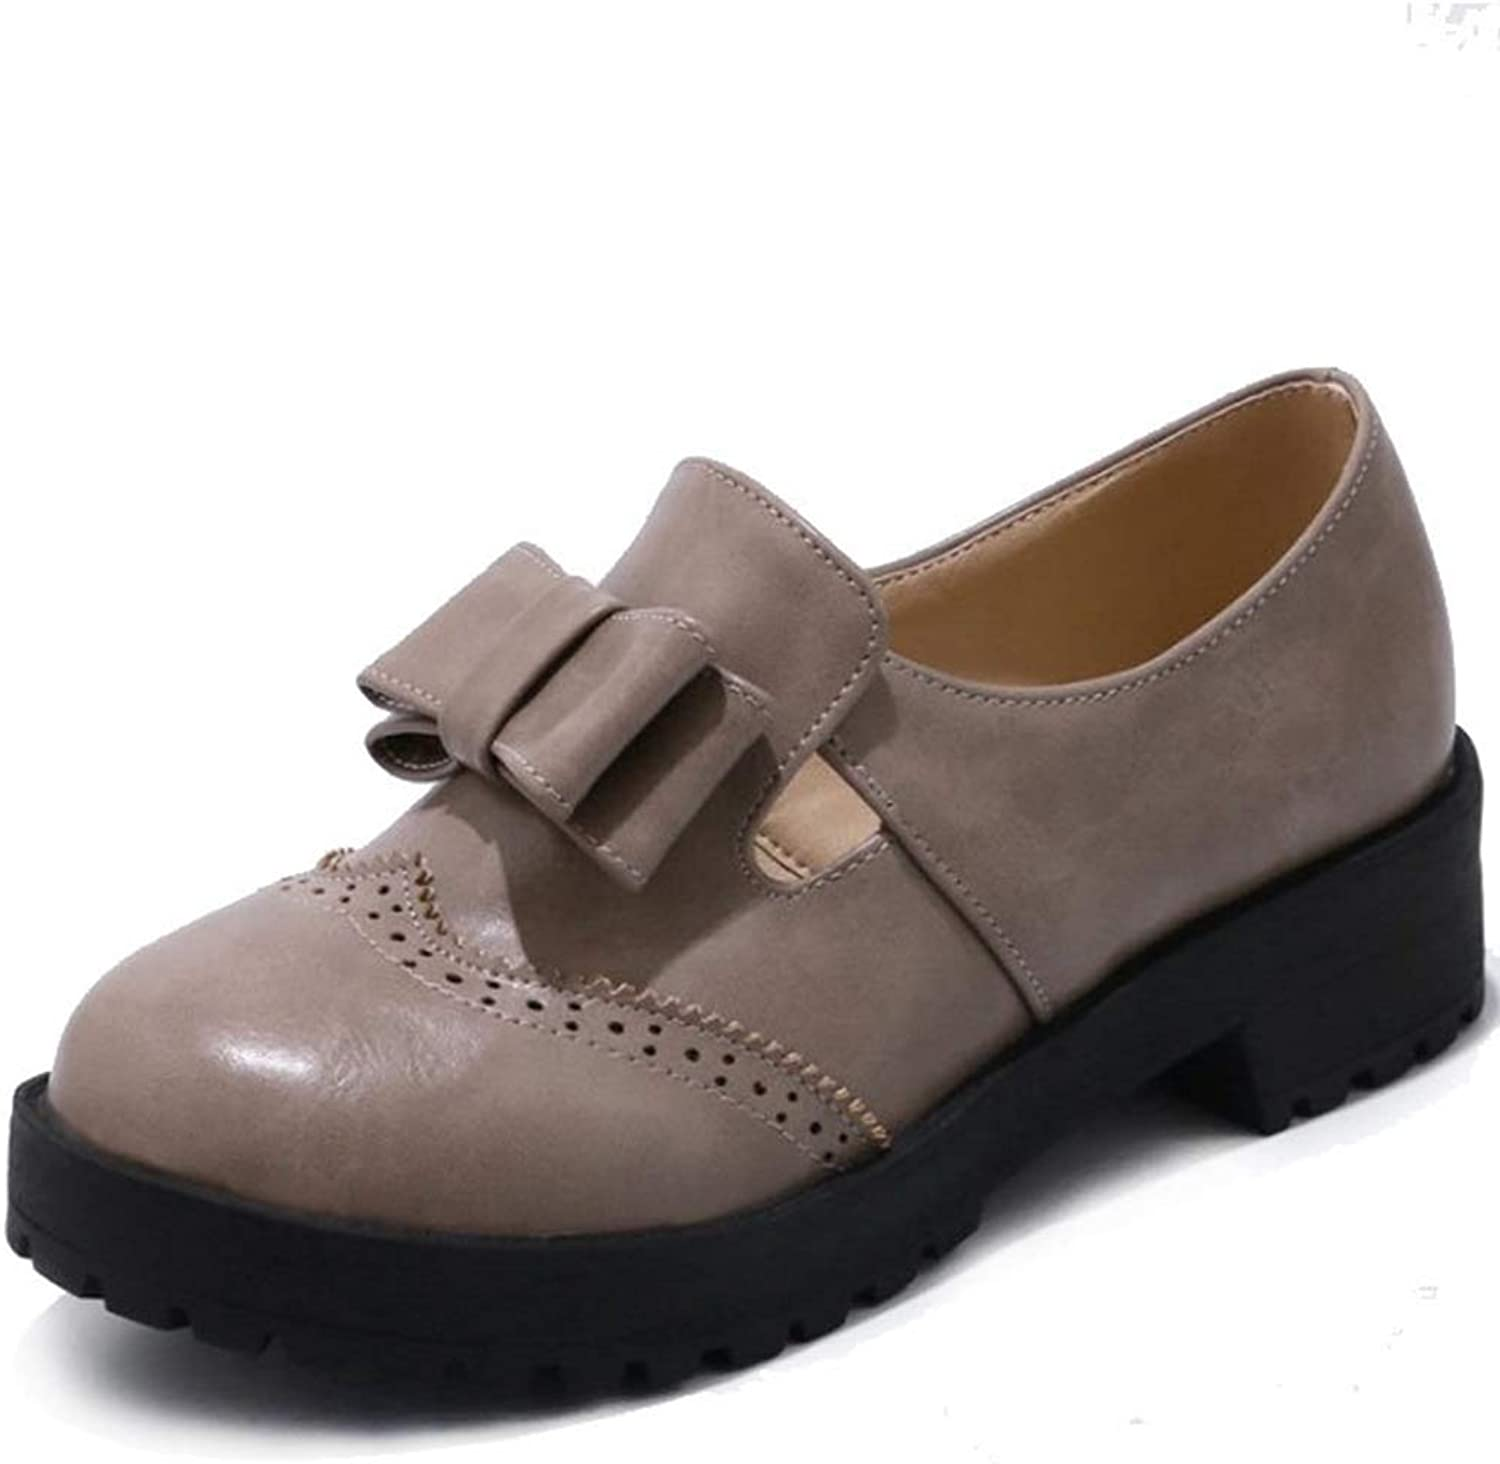 GIY Women's Oxford Loafers Low Heels Round Toe Patent Leather Bowknot Slip On Casual Flat Dress shoes Slip On Daily shoes